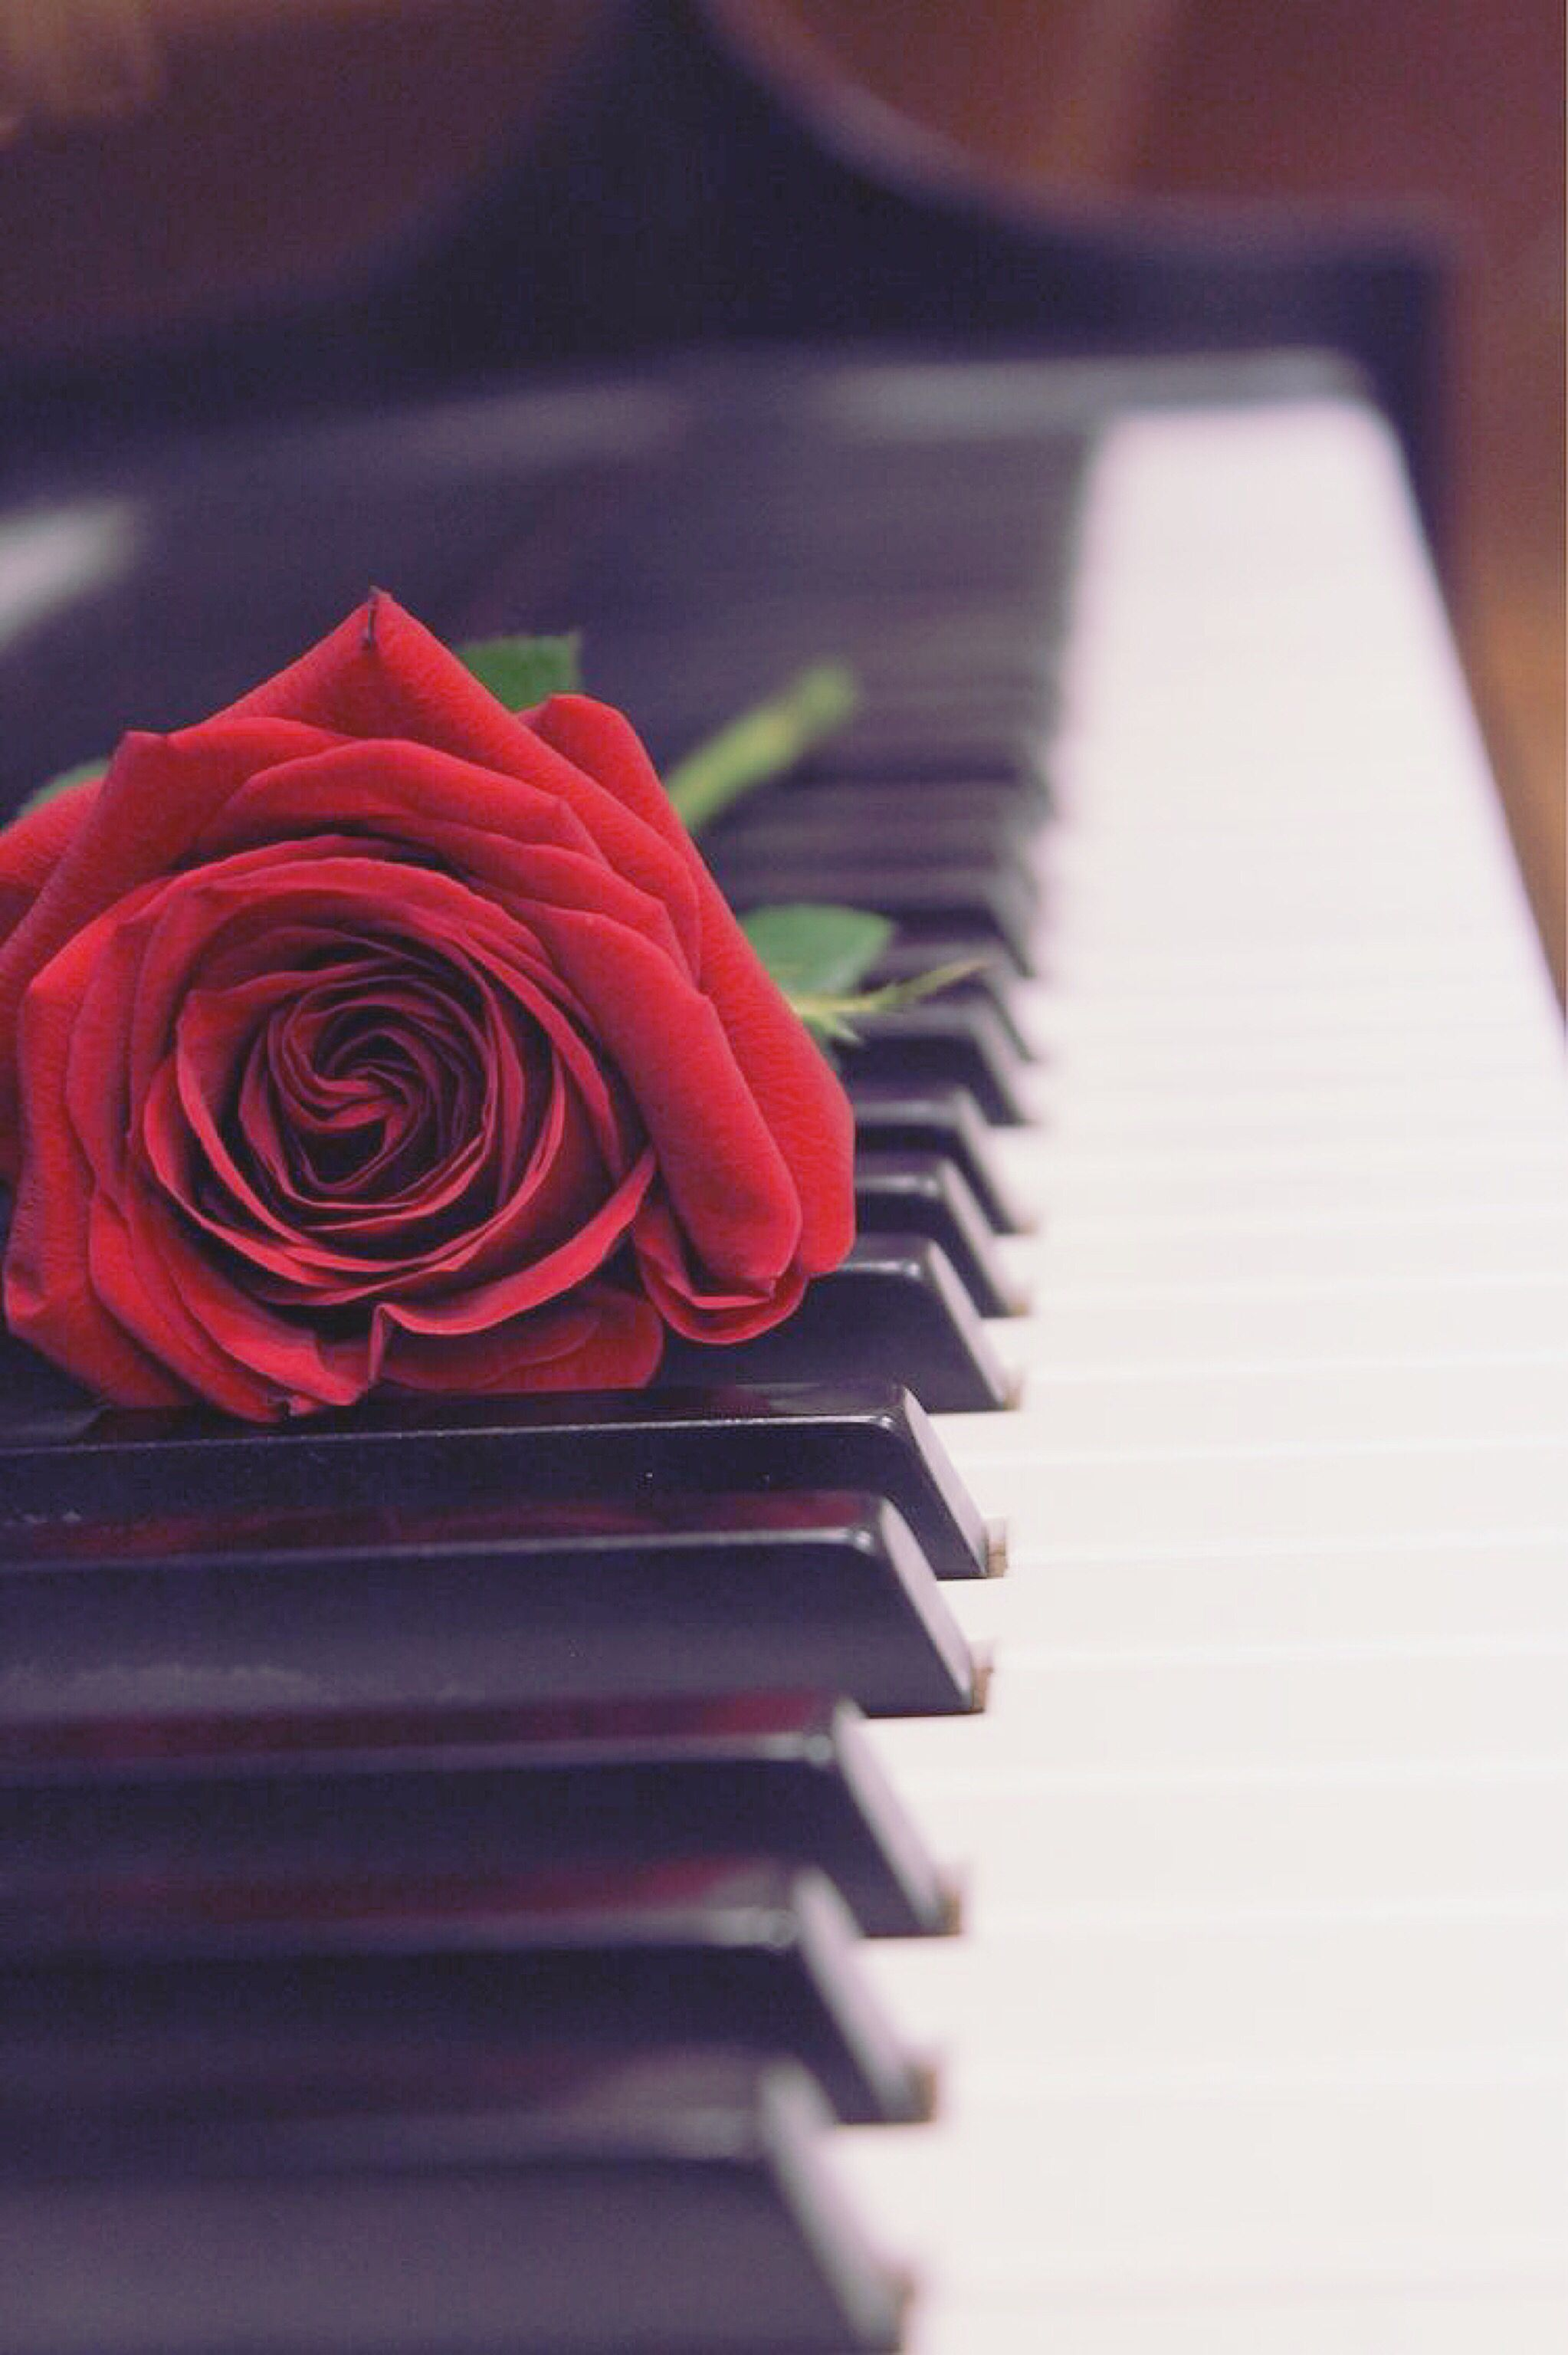 Piano Aesthetic Wallpapers Wallpaper Cave